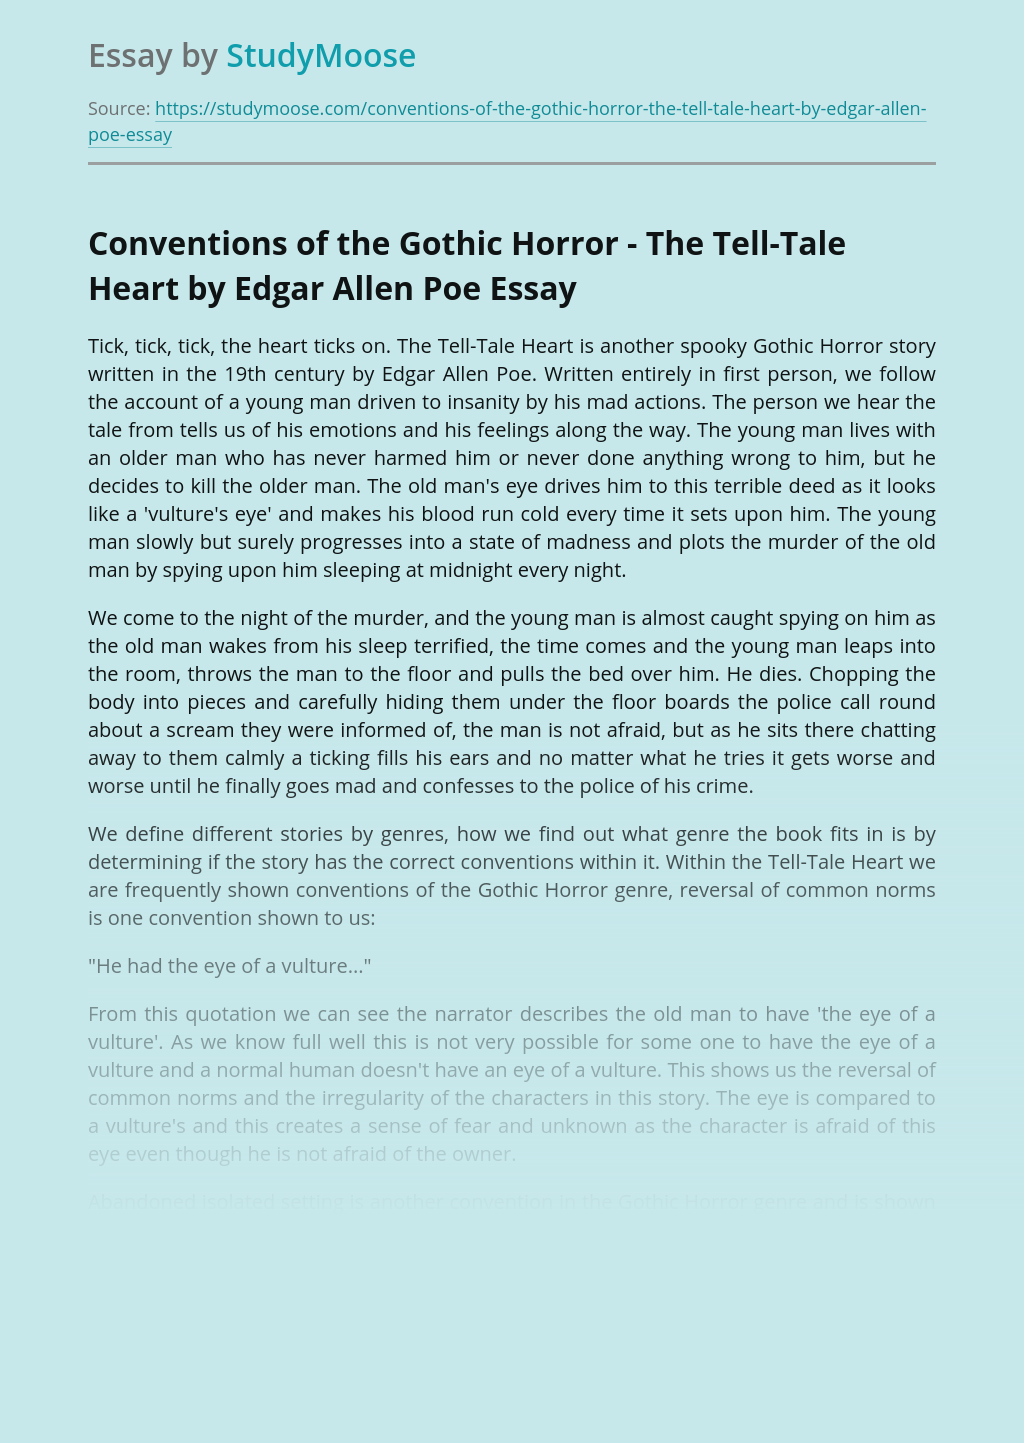 Conventions of the Gothic Horror - The Tell-Tale Heart by Edgar Allen Poe